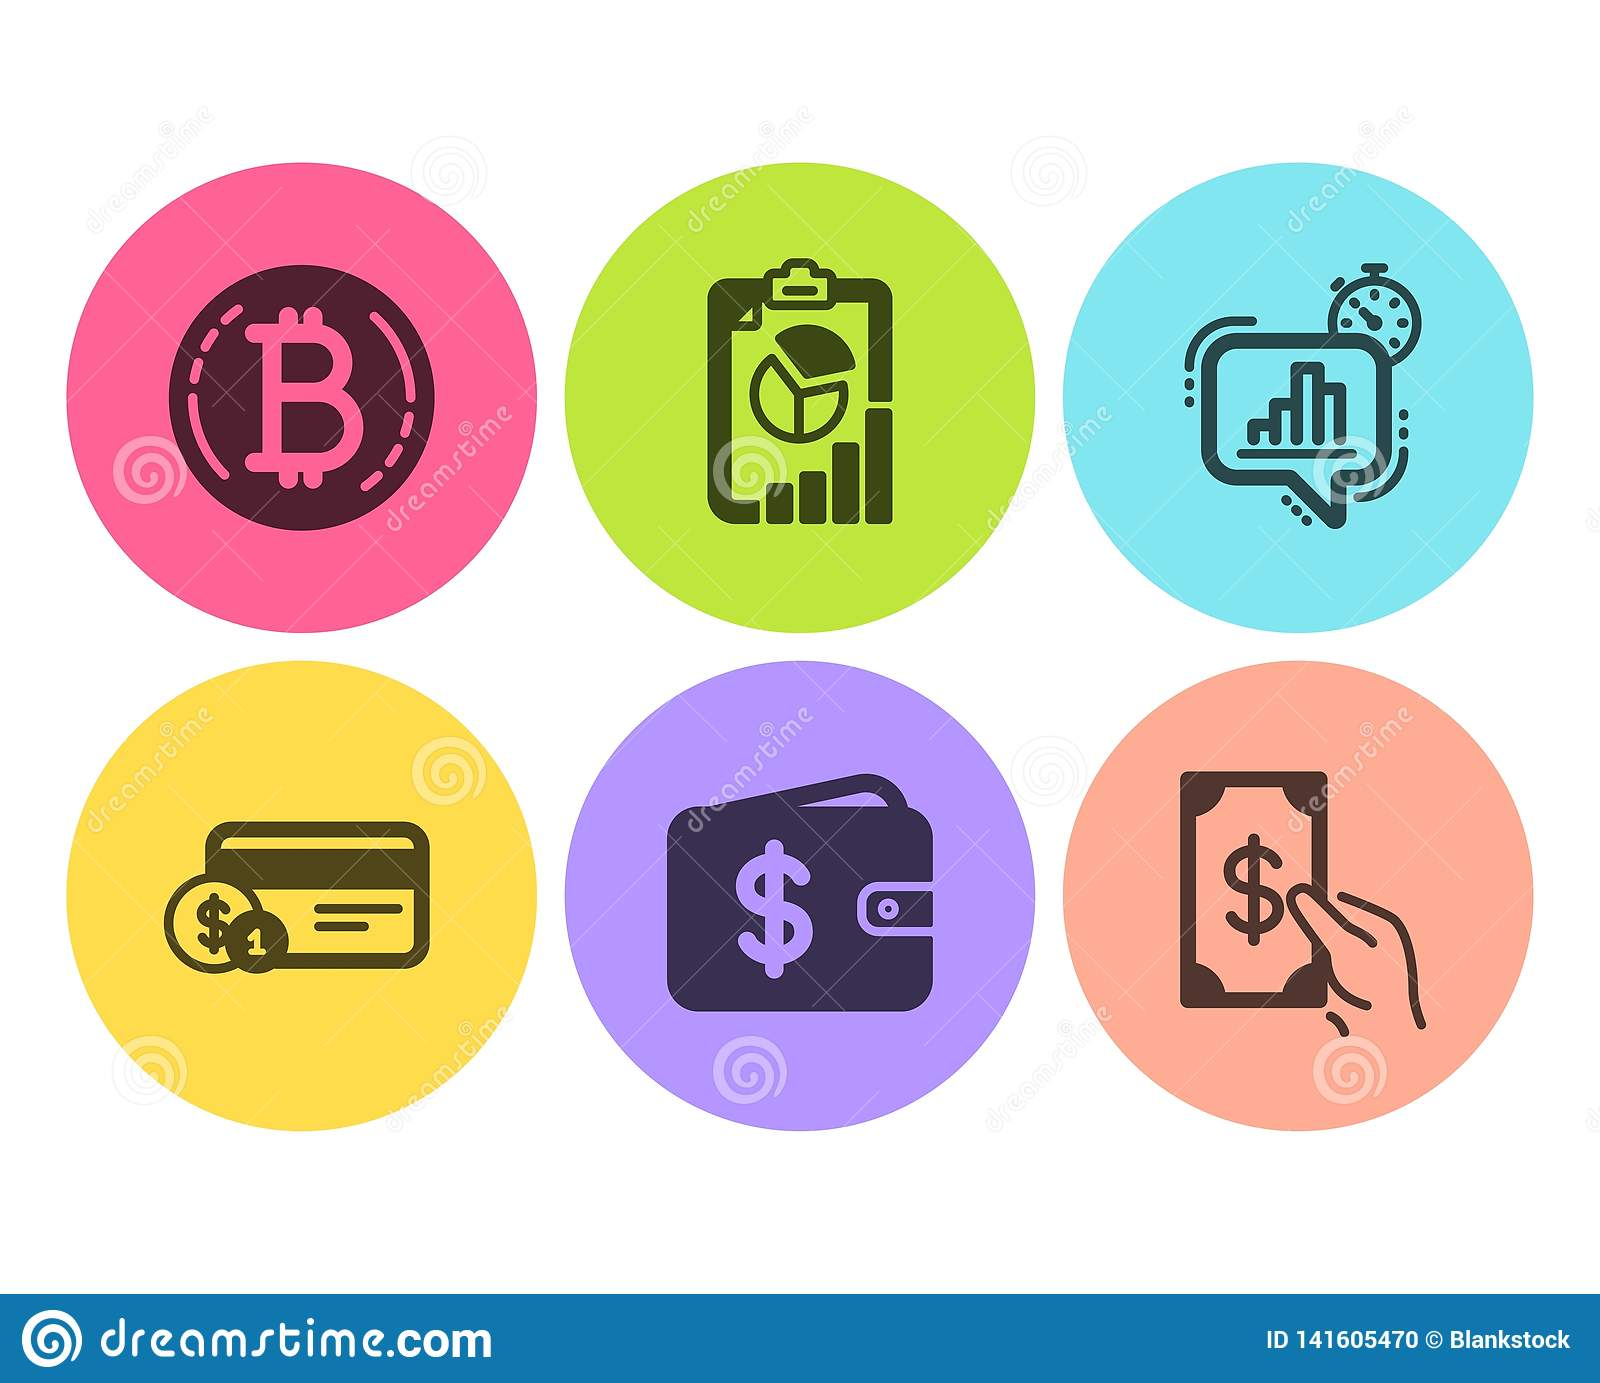 Statistics Timer, Dollar Wallet And Payment Method Icons Set